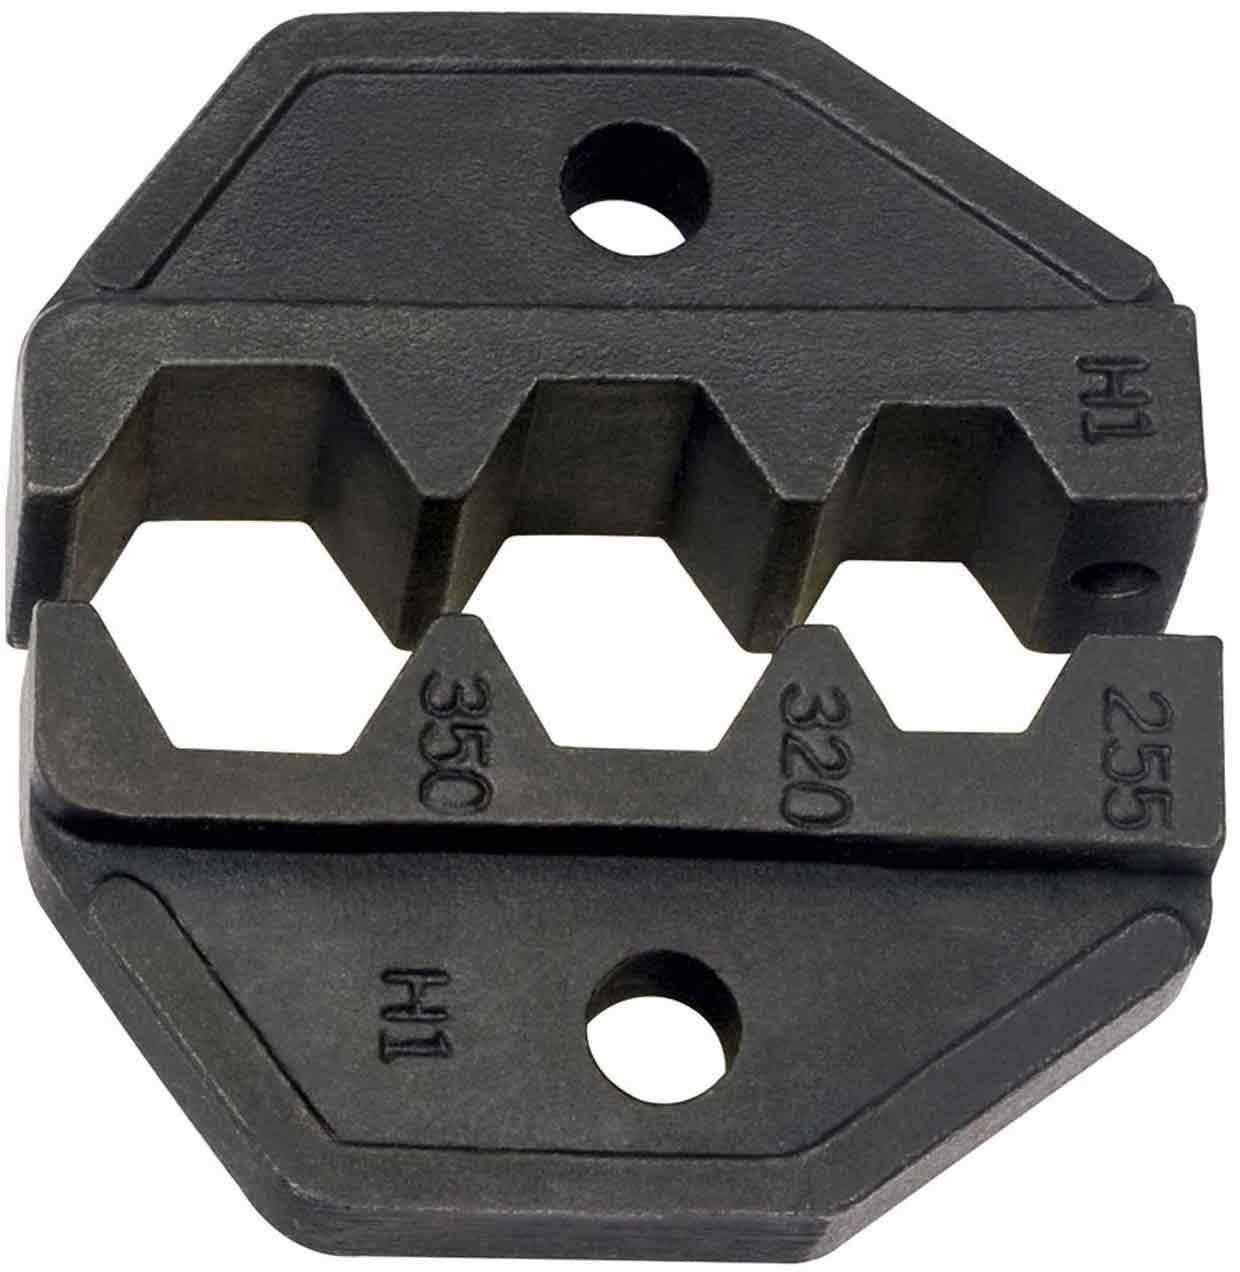 VDV212-034 KLEIN HEX CRIMP DIE FOR RG59/6 COAX F CONN ************************* SPECIAL ORDER ITEM NO RETURNS OR SUBJECT TO RESTOCK FEE *************************